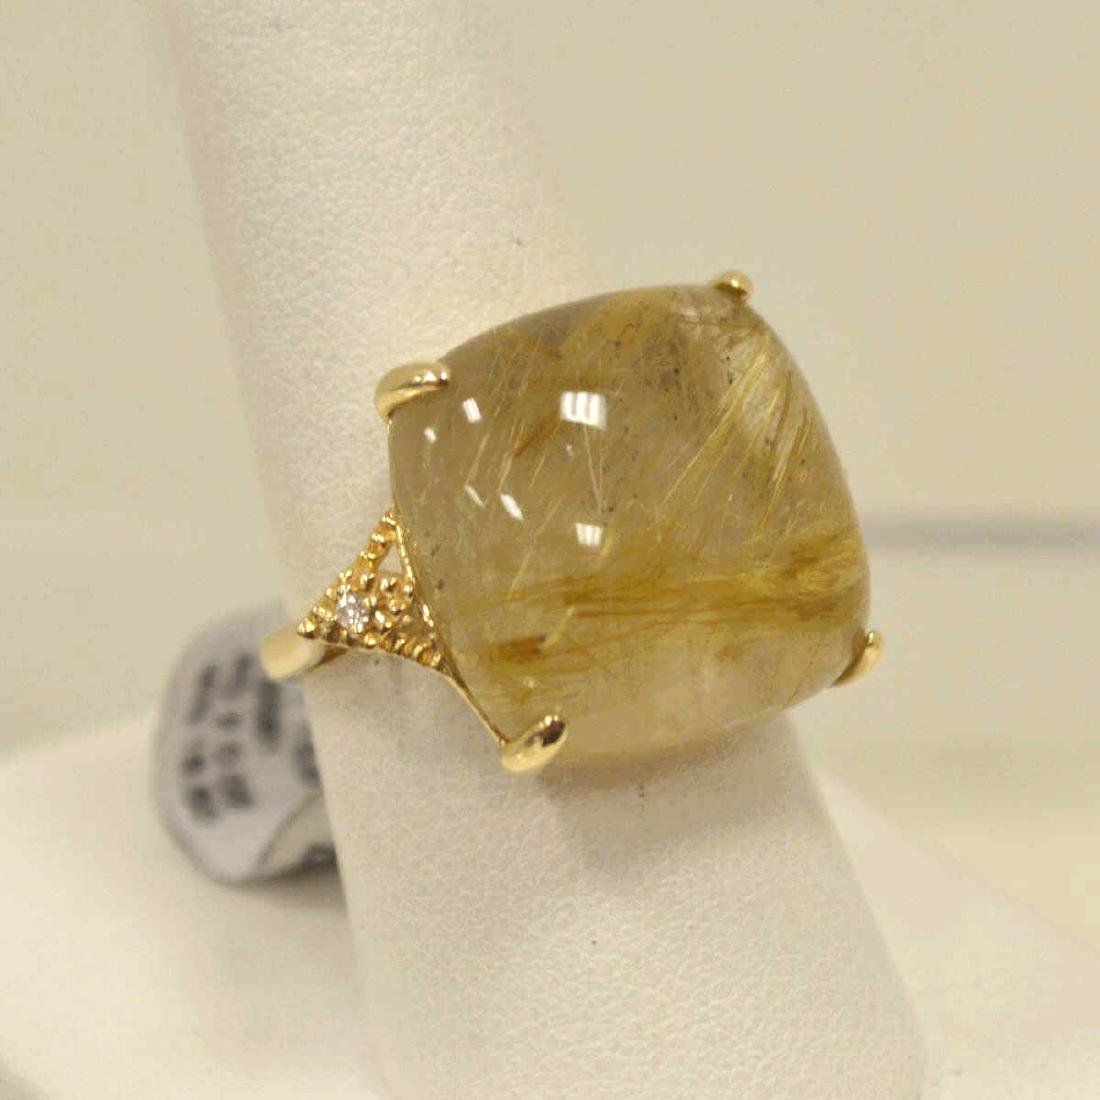 14kt yellow gold rutilated quartz and diamond ring - 2